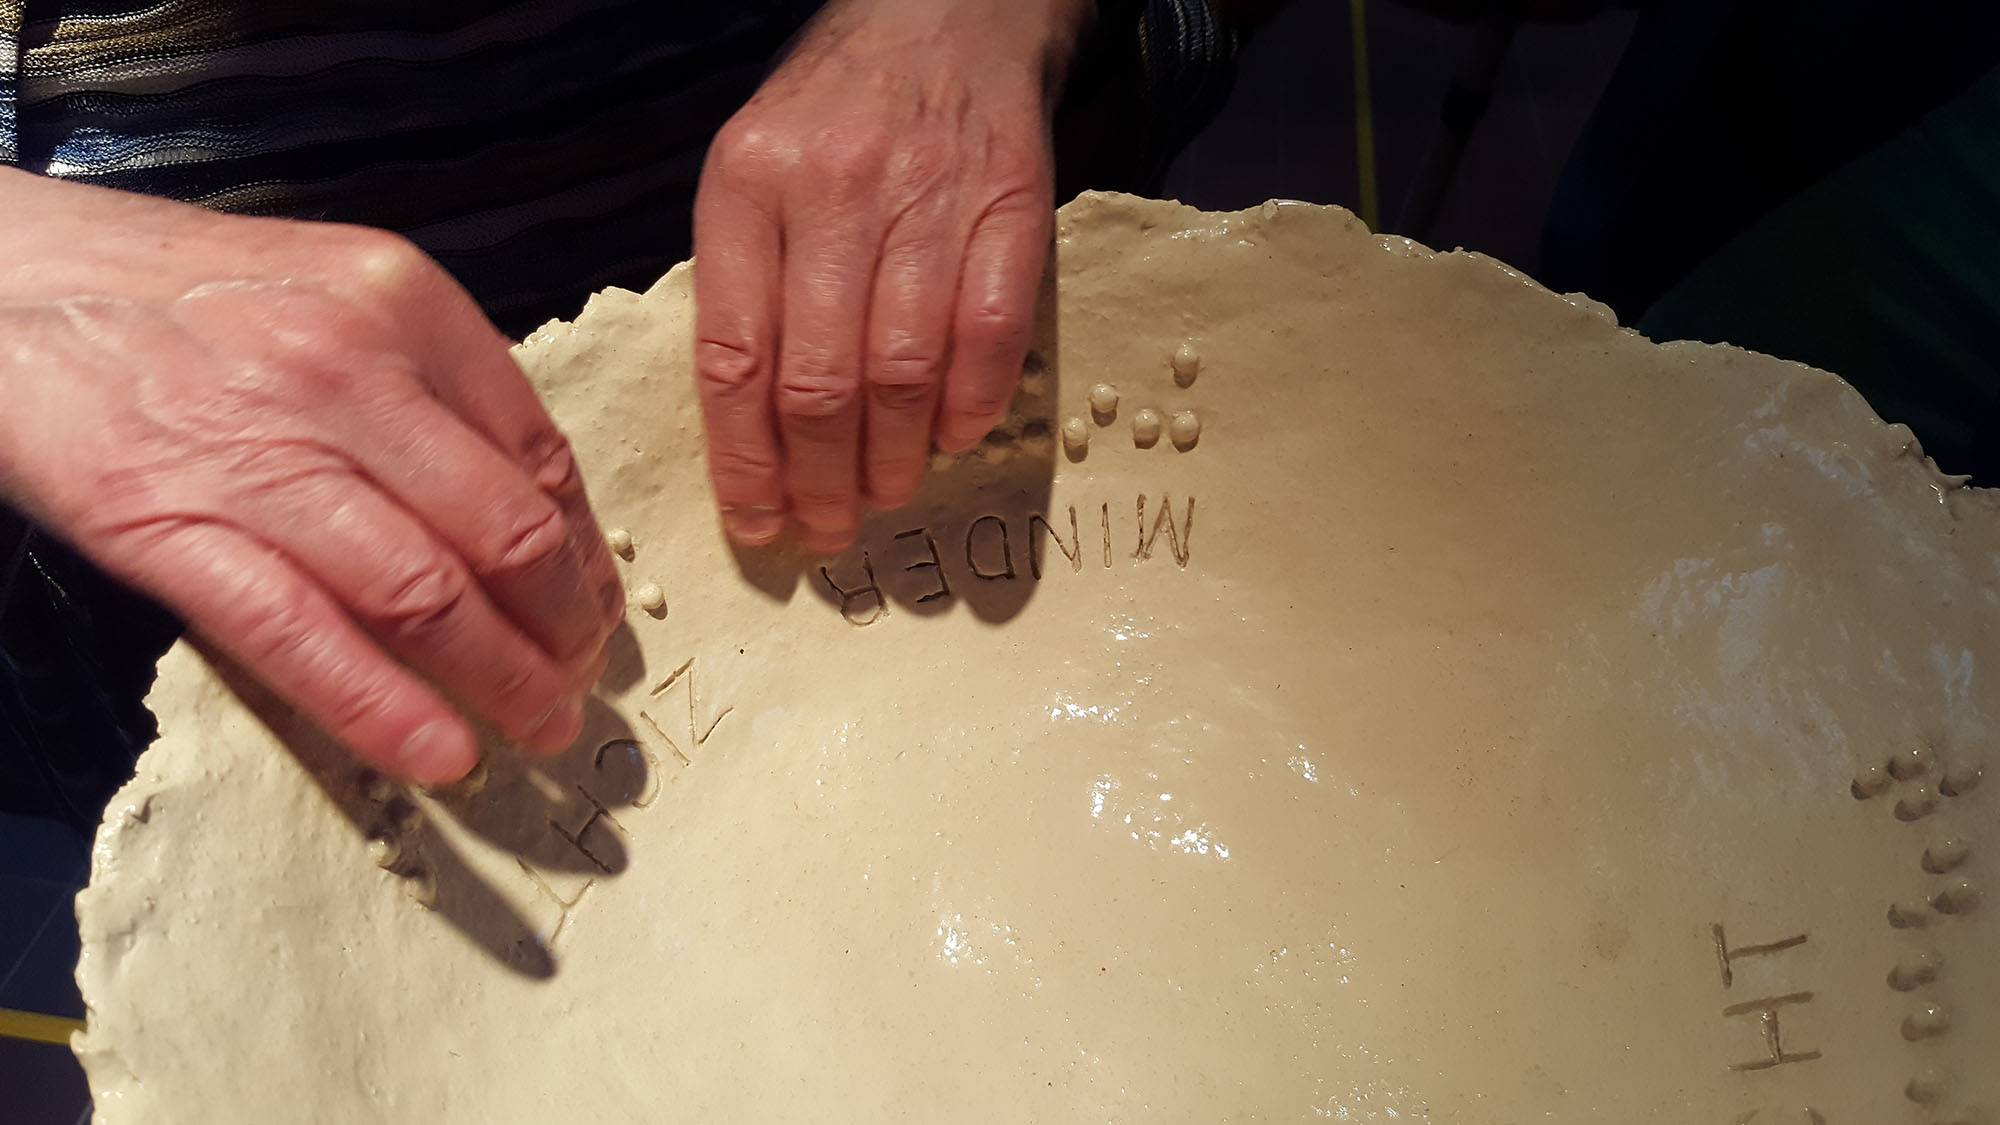 Detail photo 2 hands feel braille dots on ceramic scale Less visibility - more insight, by Jofke